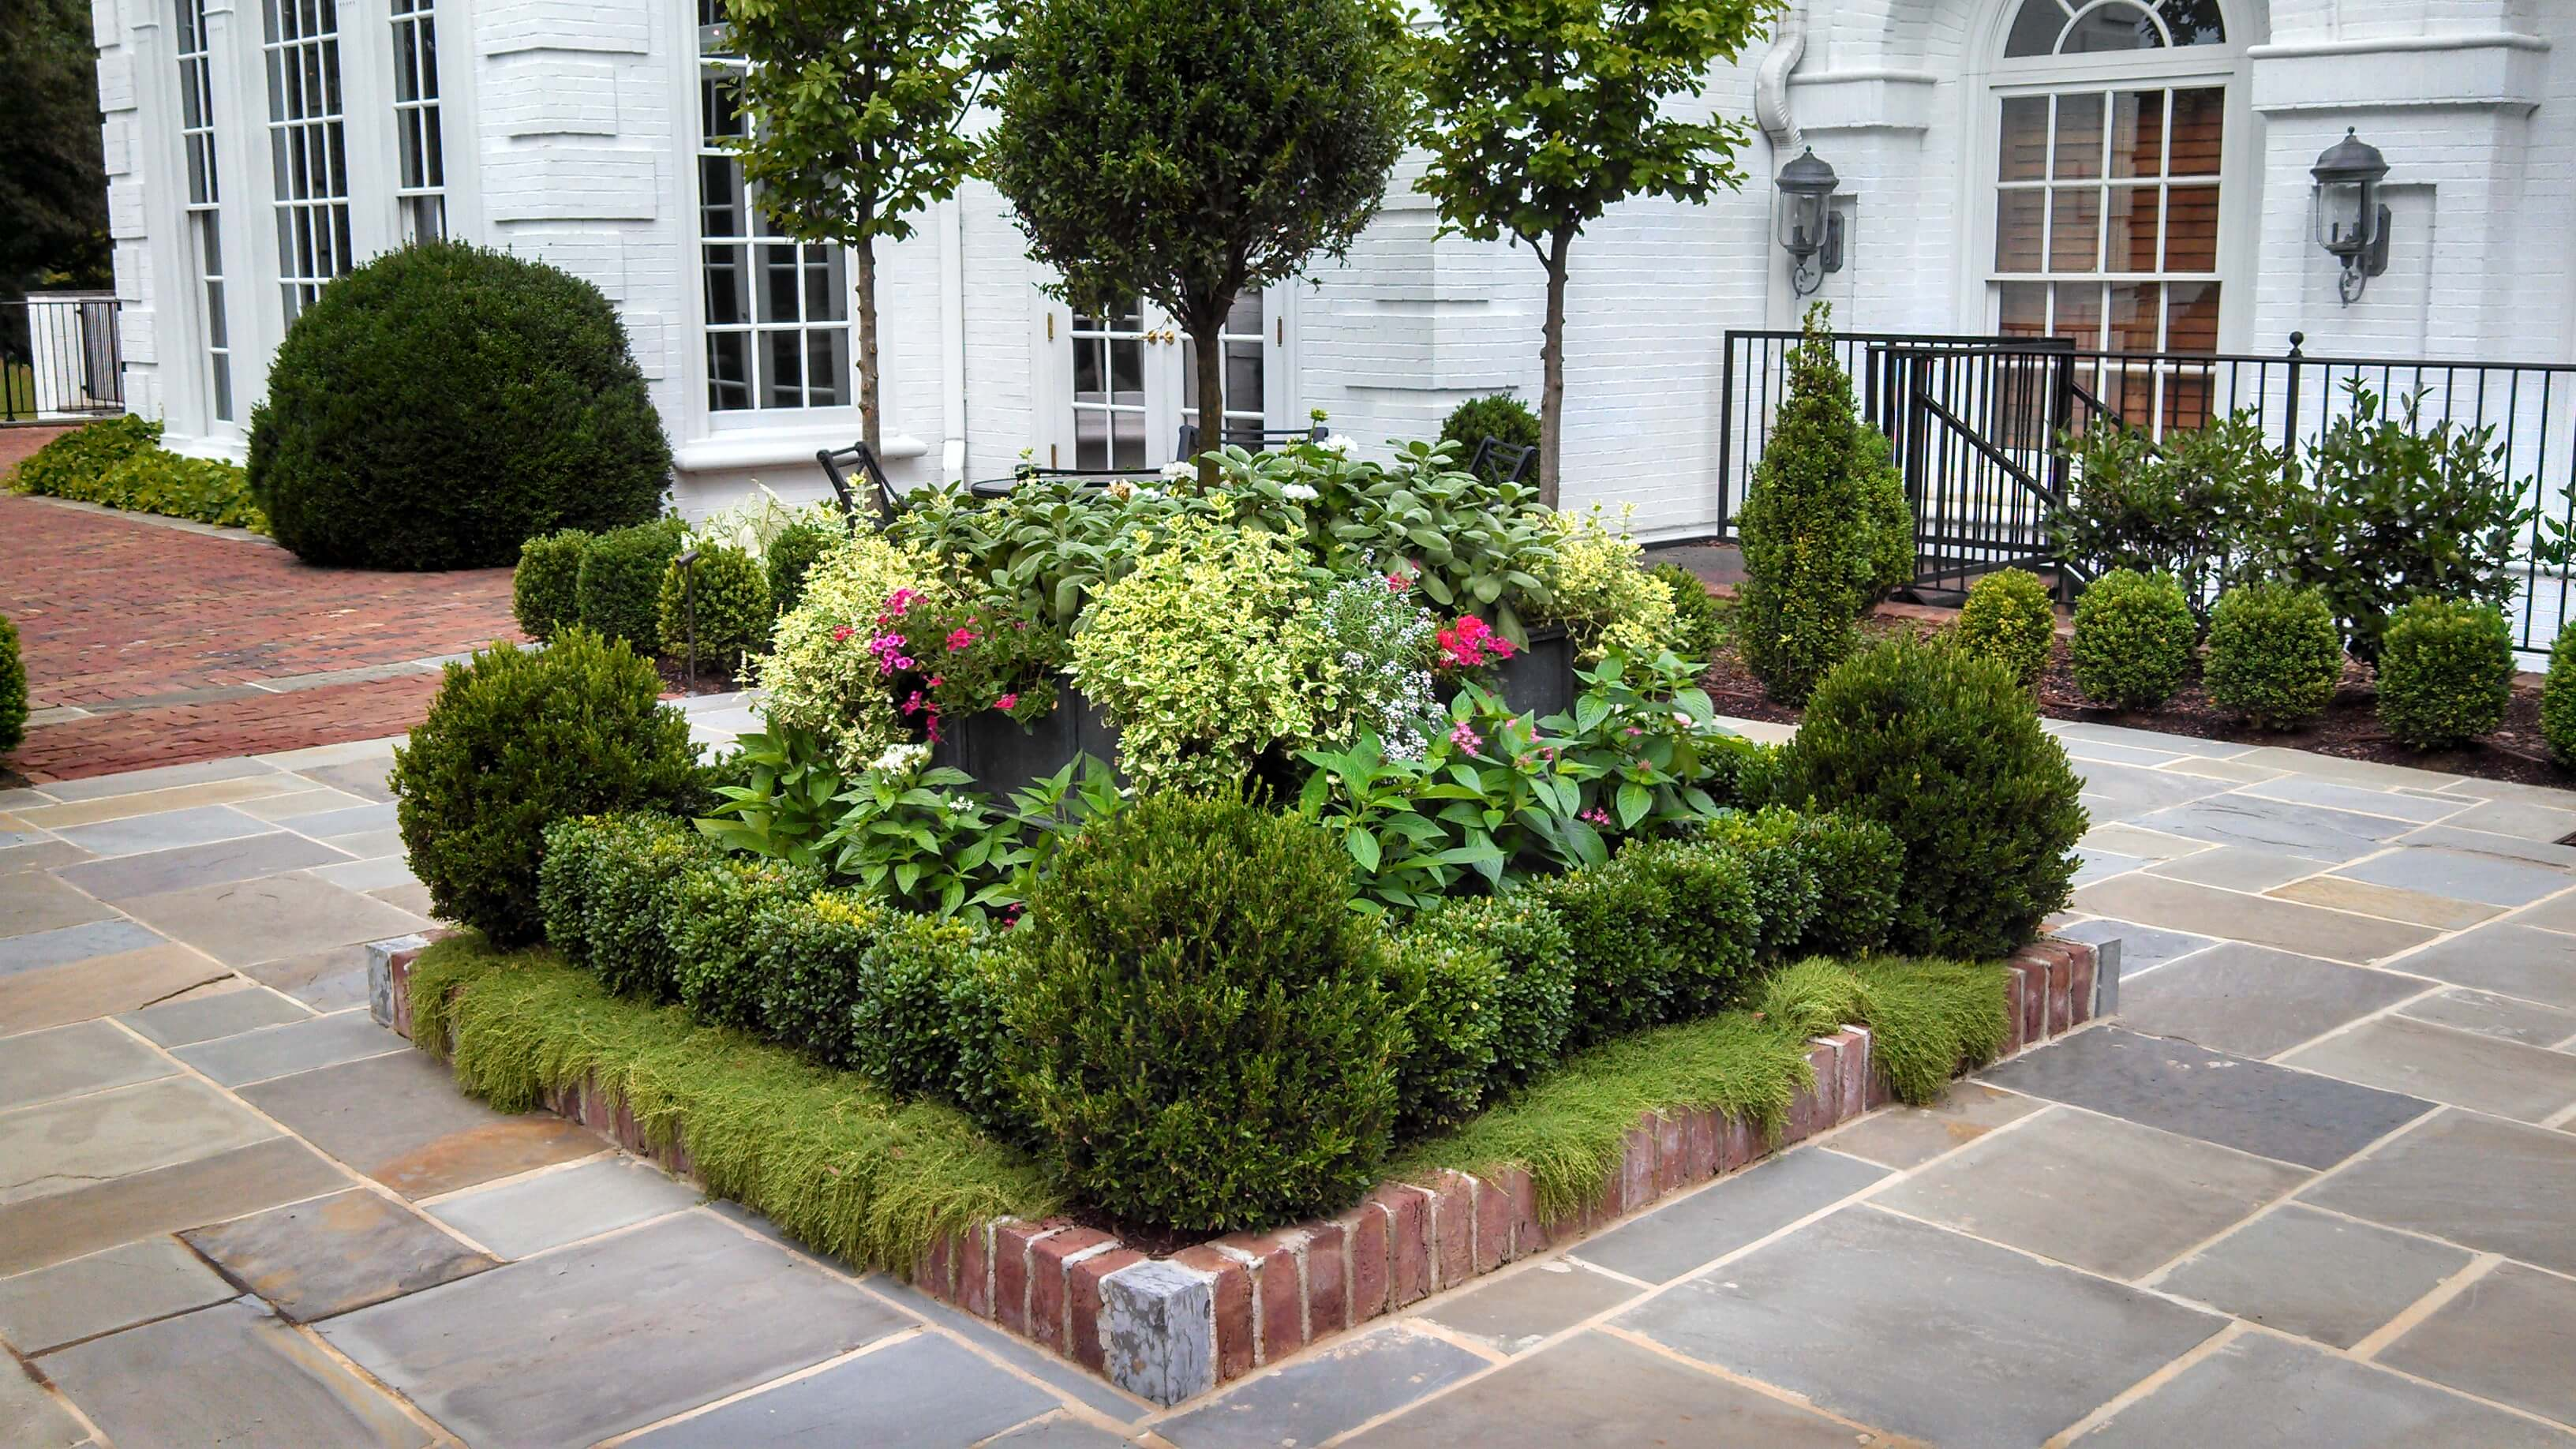 50 Best Front Yard Landscaping Ideas and Garden Designs ... on Landscape Front Yard Ideas  id=33881